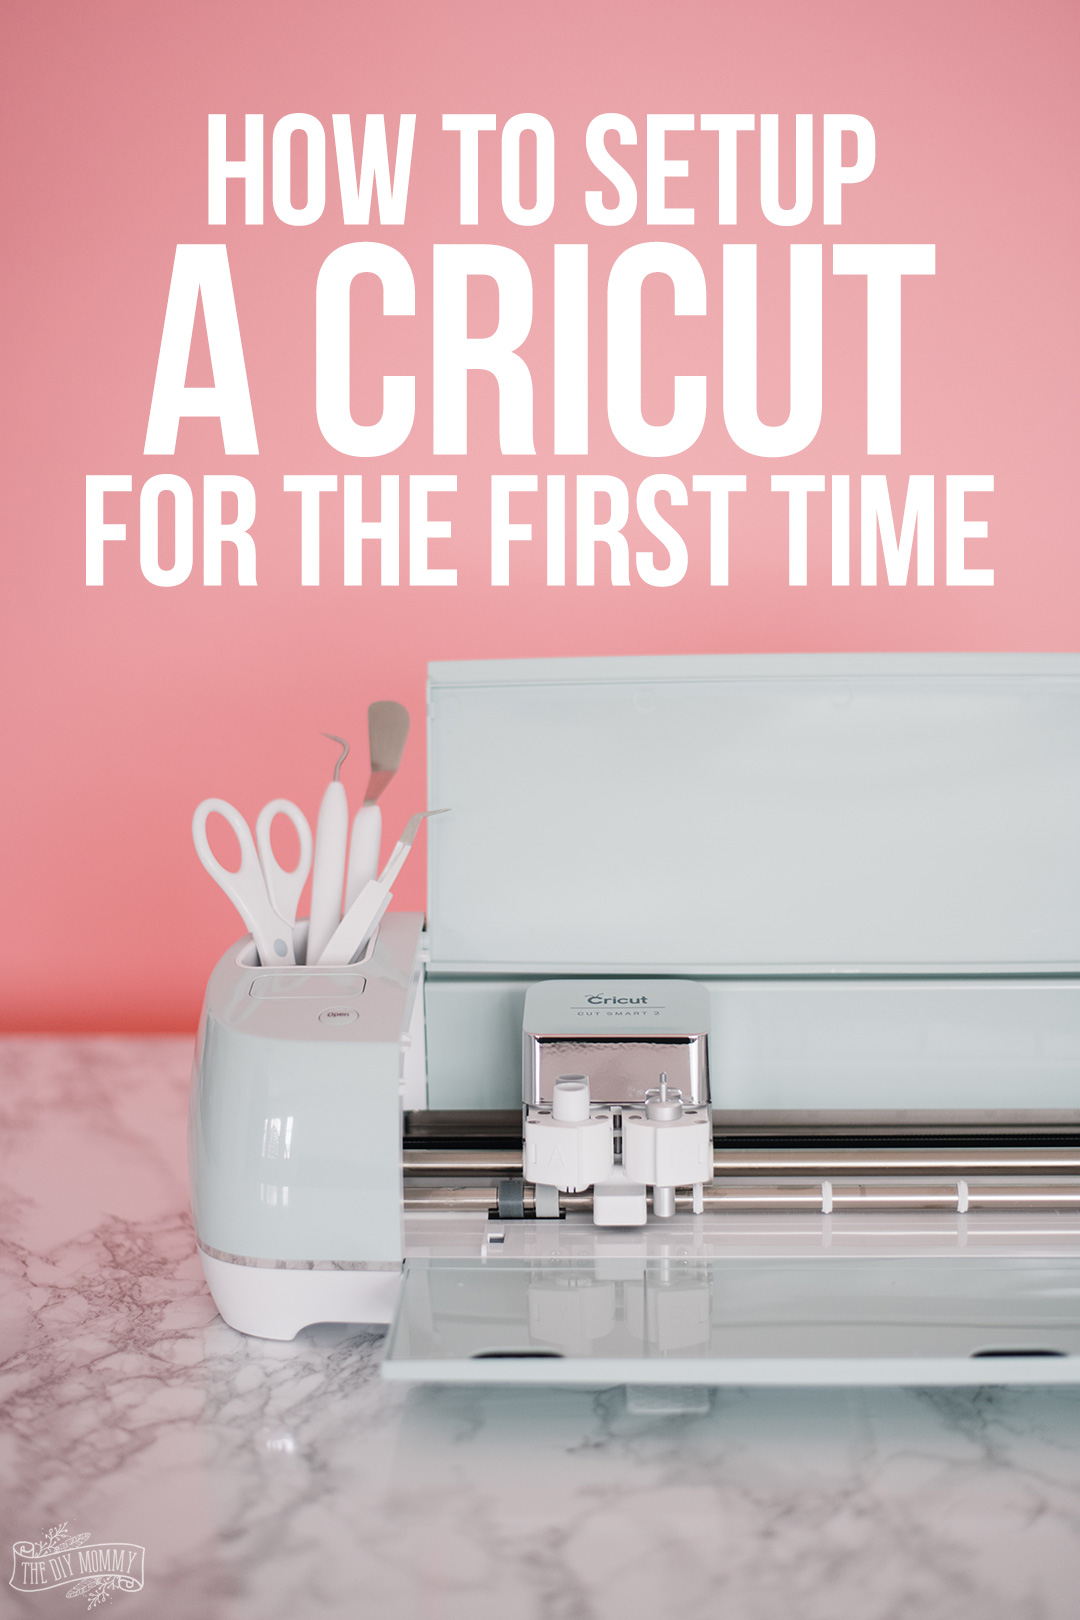 How to setup a Cricut for the first time